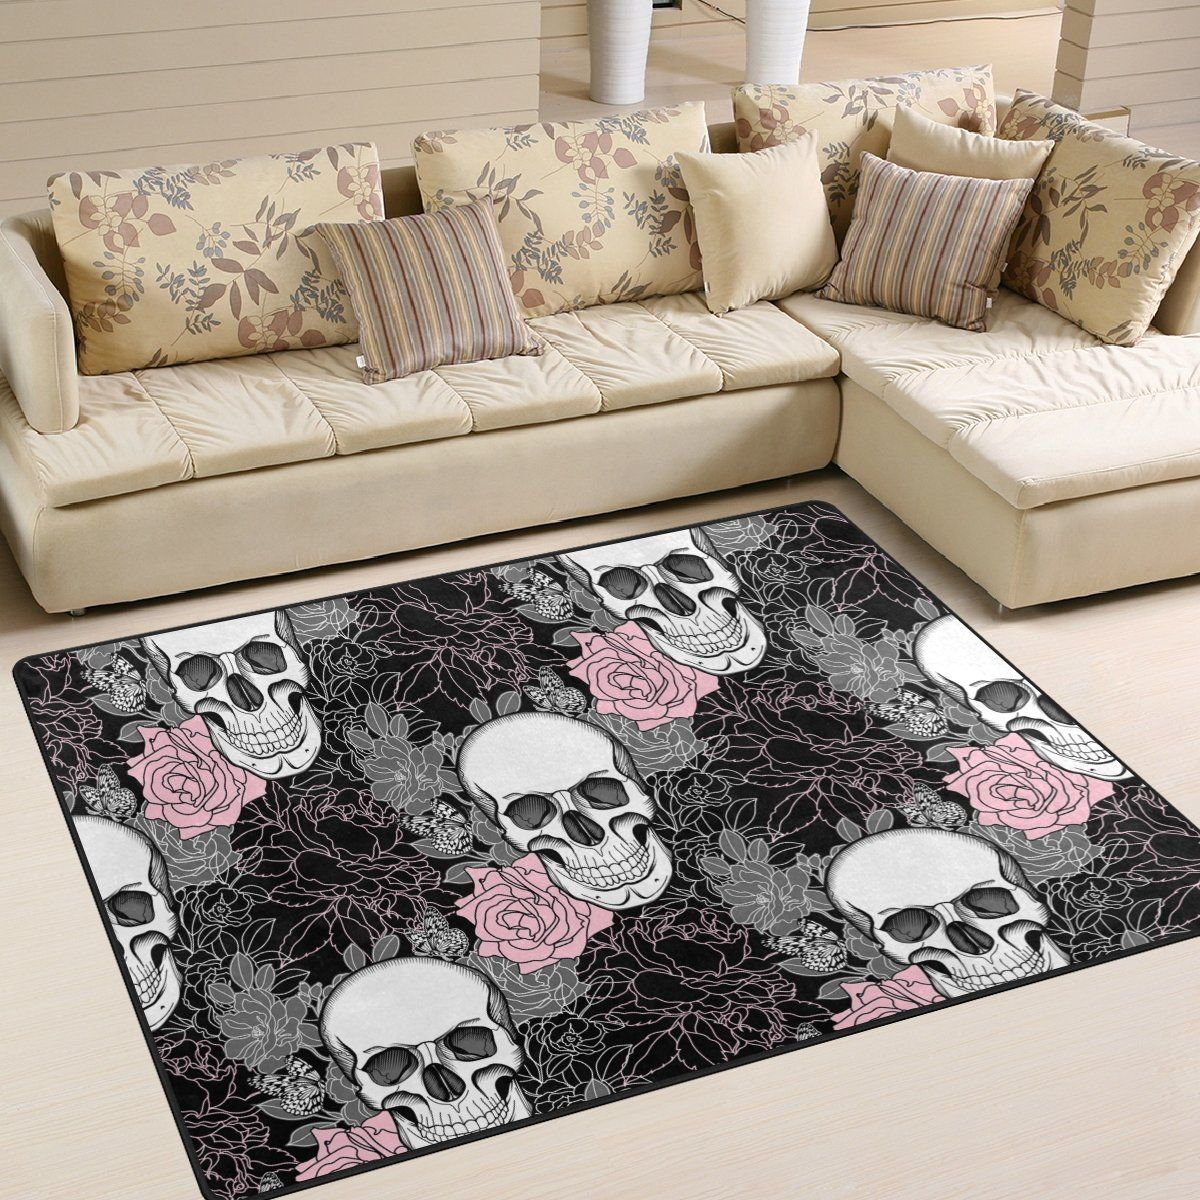 Halloween Style Suggestions Stylish Sugar Skull Day Of The Dead Halloween Decorations Flower Butterfly Area Rug Goth Home Decor Home Decor Gothic Home Decor Skull living room decor